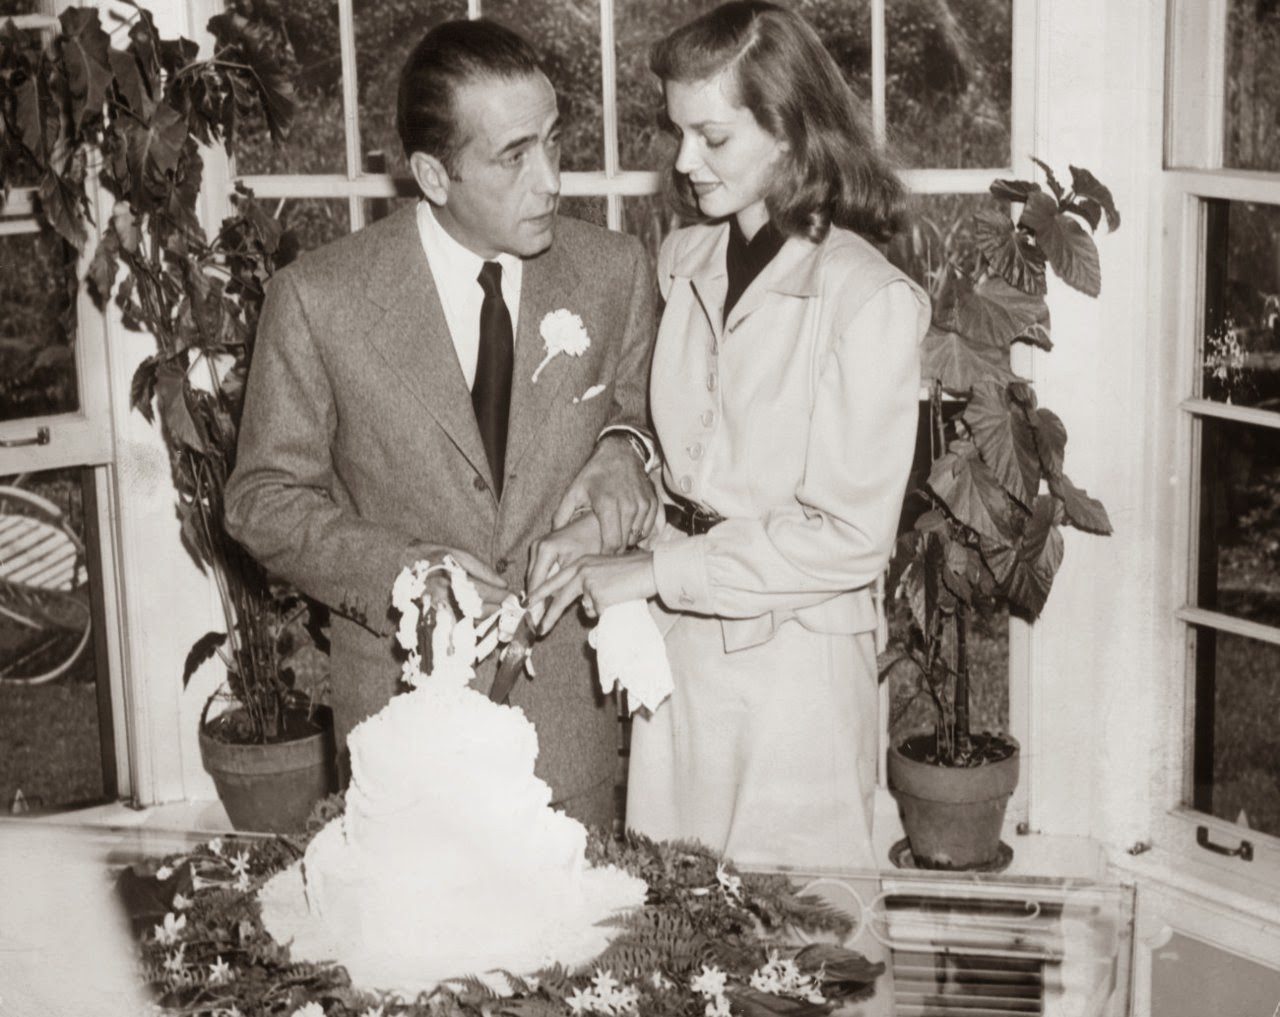 Lauren Bacall and Humphrey Bogart Wedding - Affordable 1940s Wedding Dresses